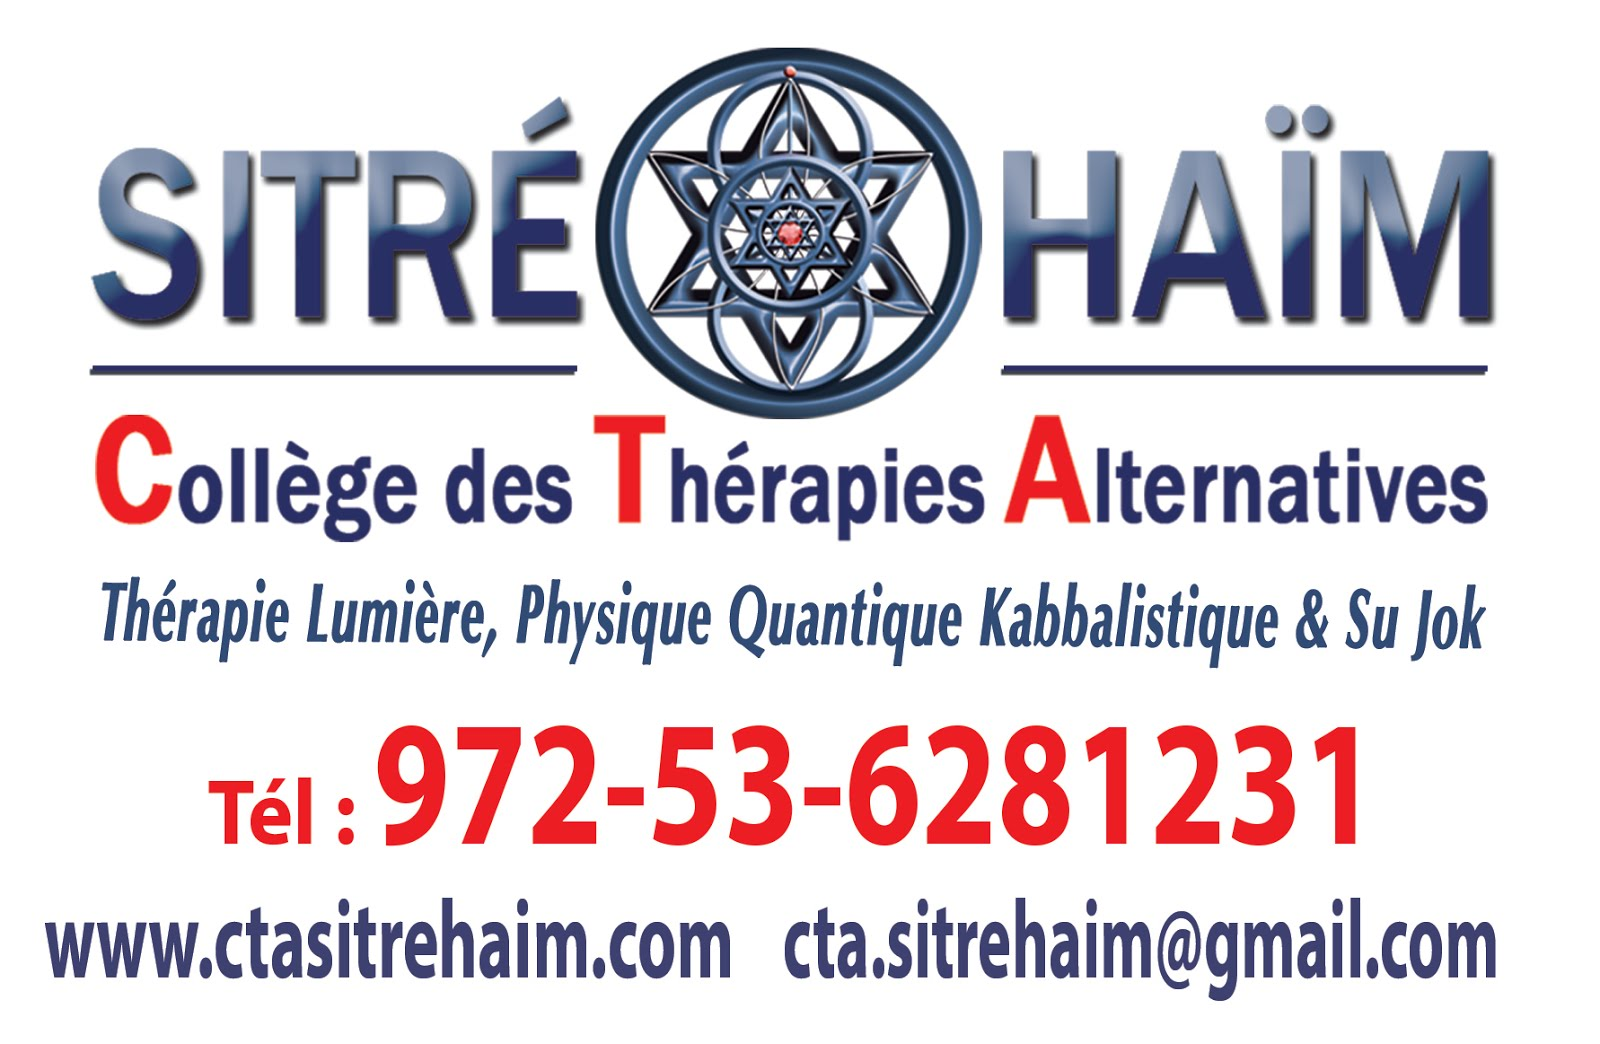 Ecole et formation therapie